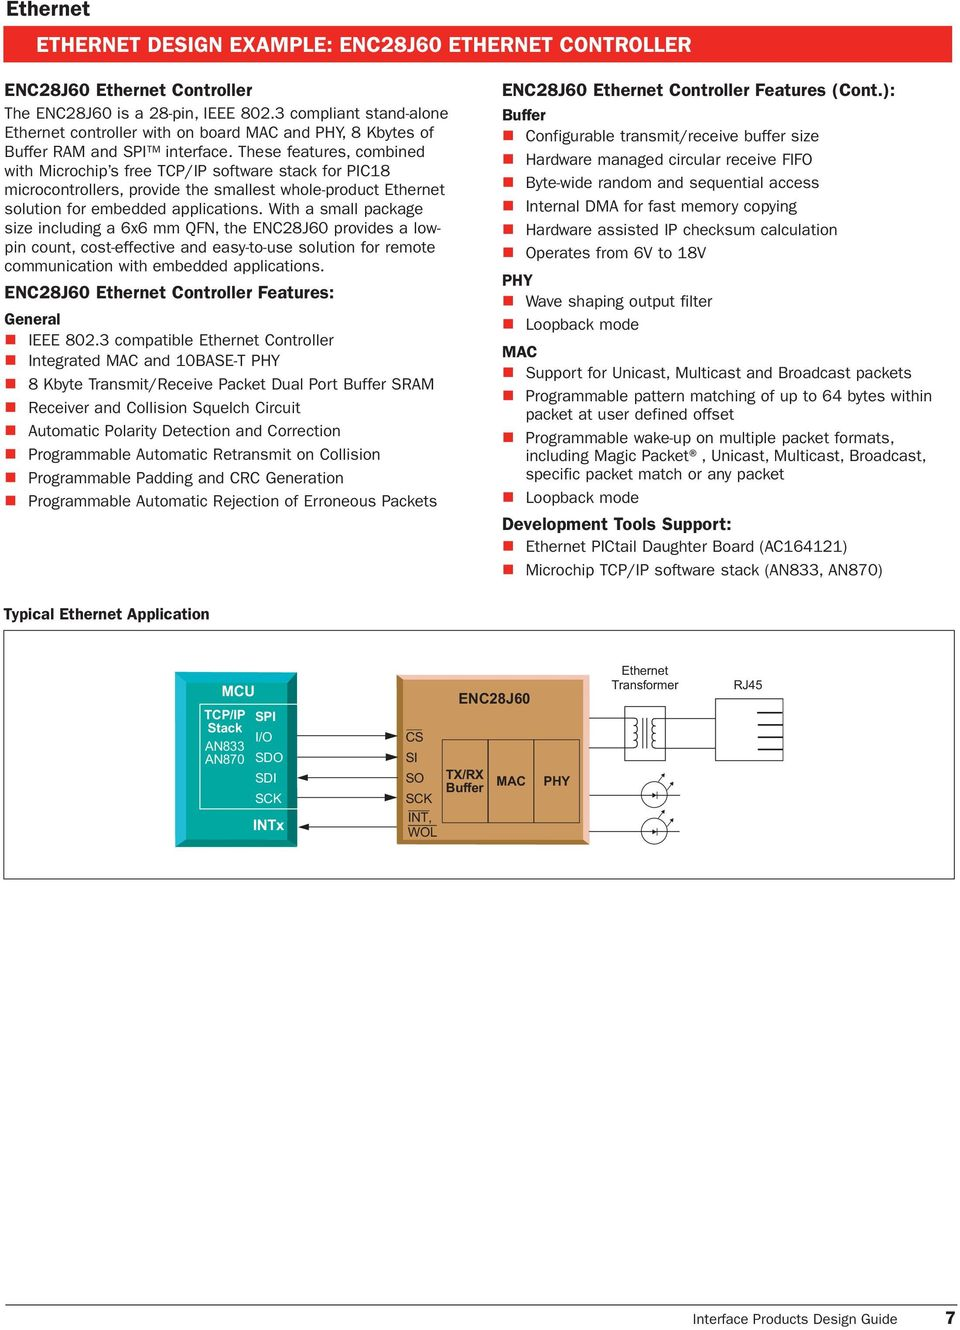 Interface Products Design Guide Using CAN, LIN, Ethernet, Infrared